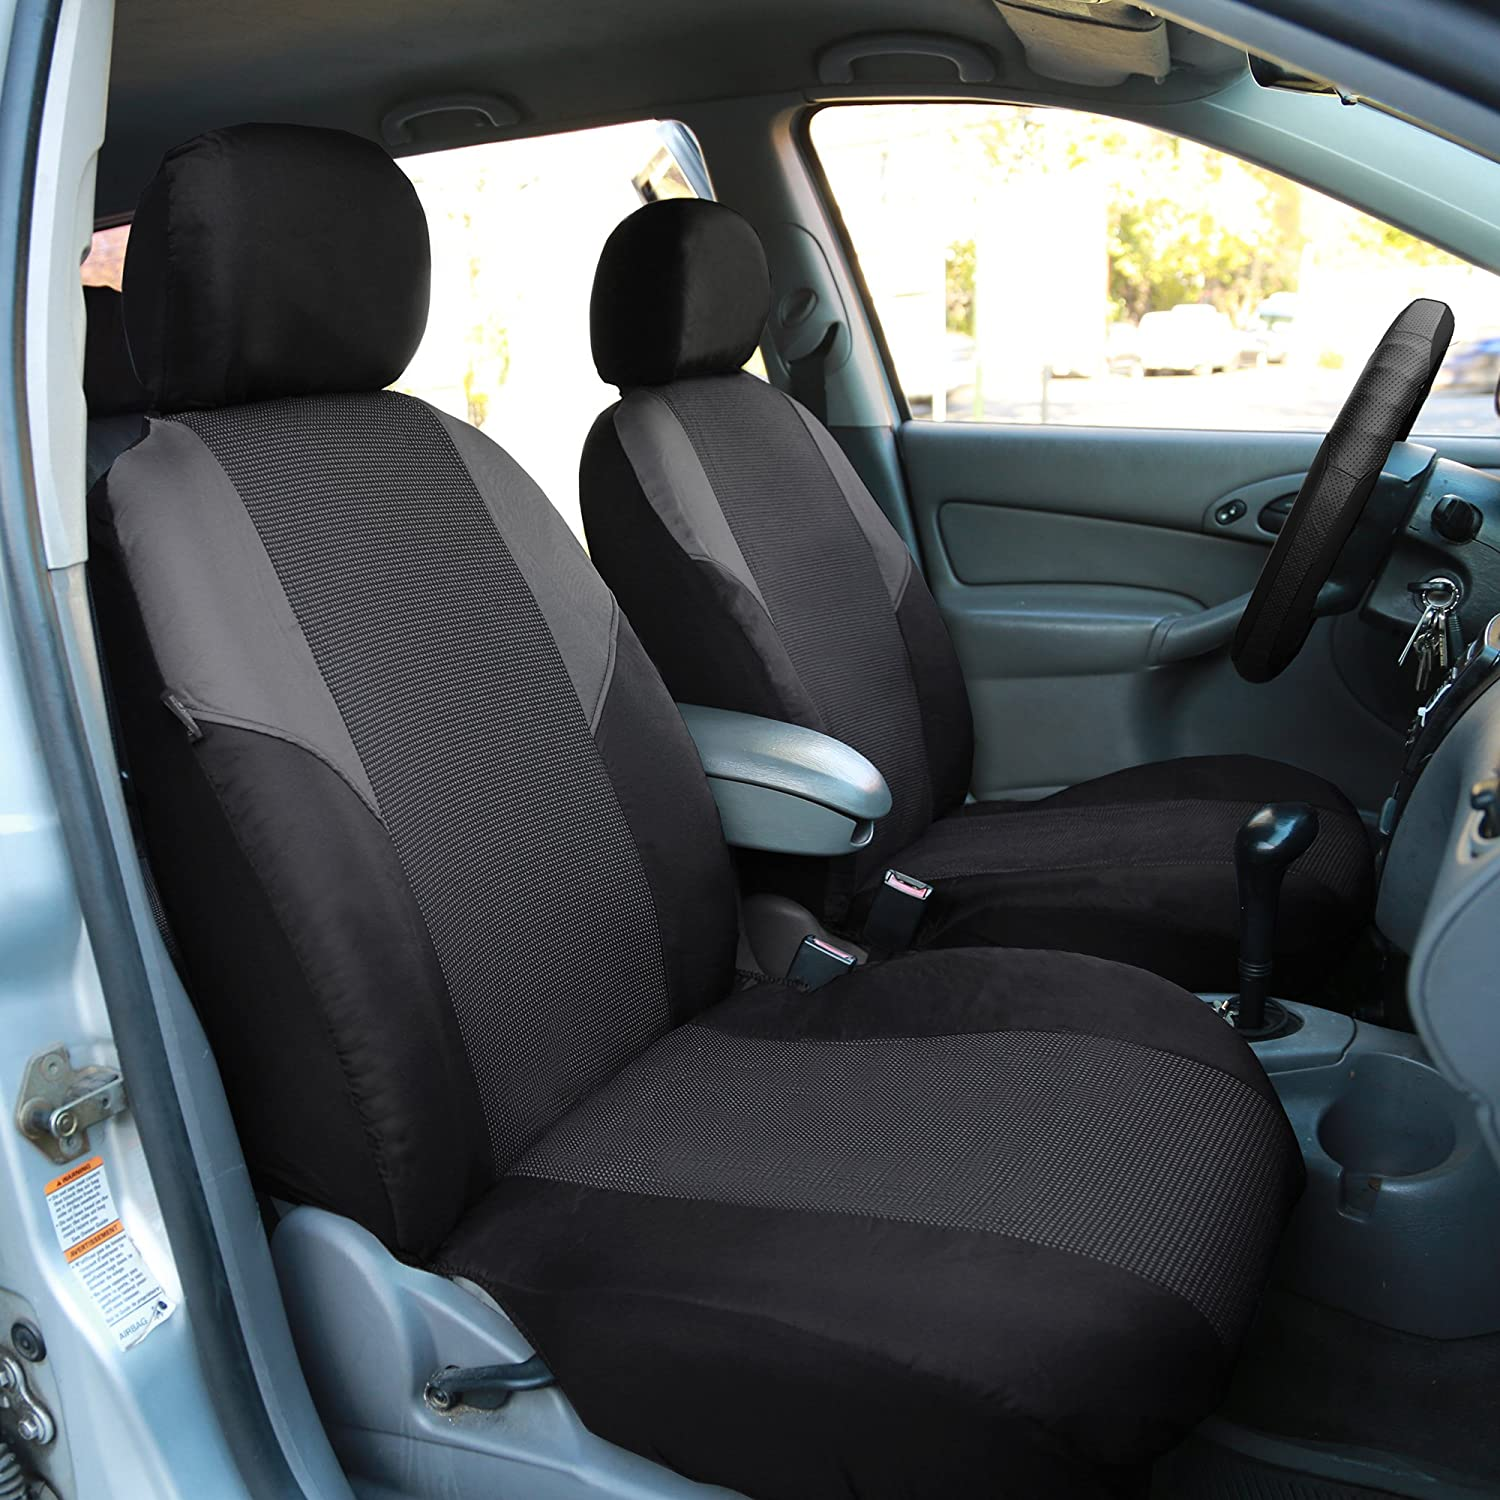 Truck Black-Universal Car or Van FH Group Gray-Half FB064GRAY102 Cross Weave Fabric Pair Set Seat Covers SUV Airbag Compatible